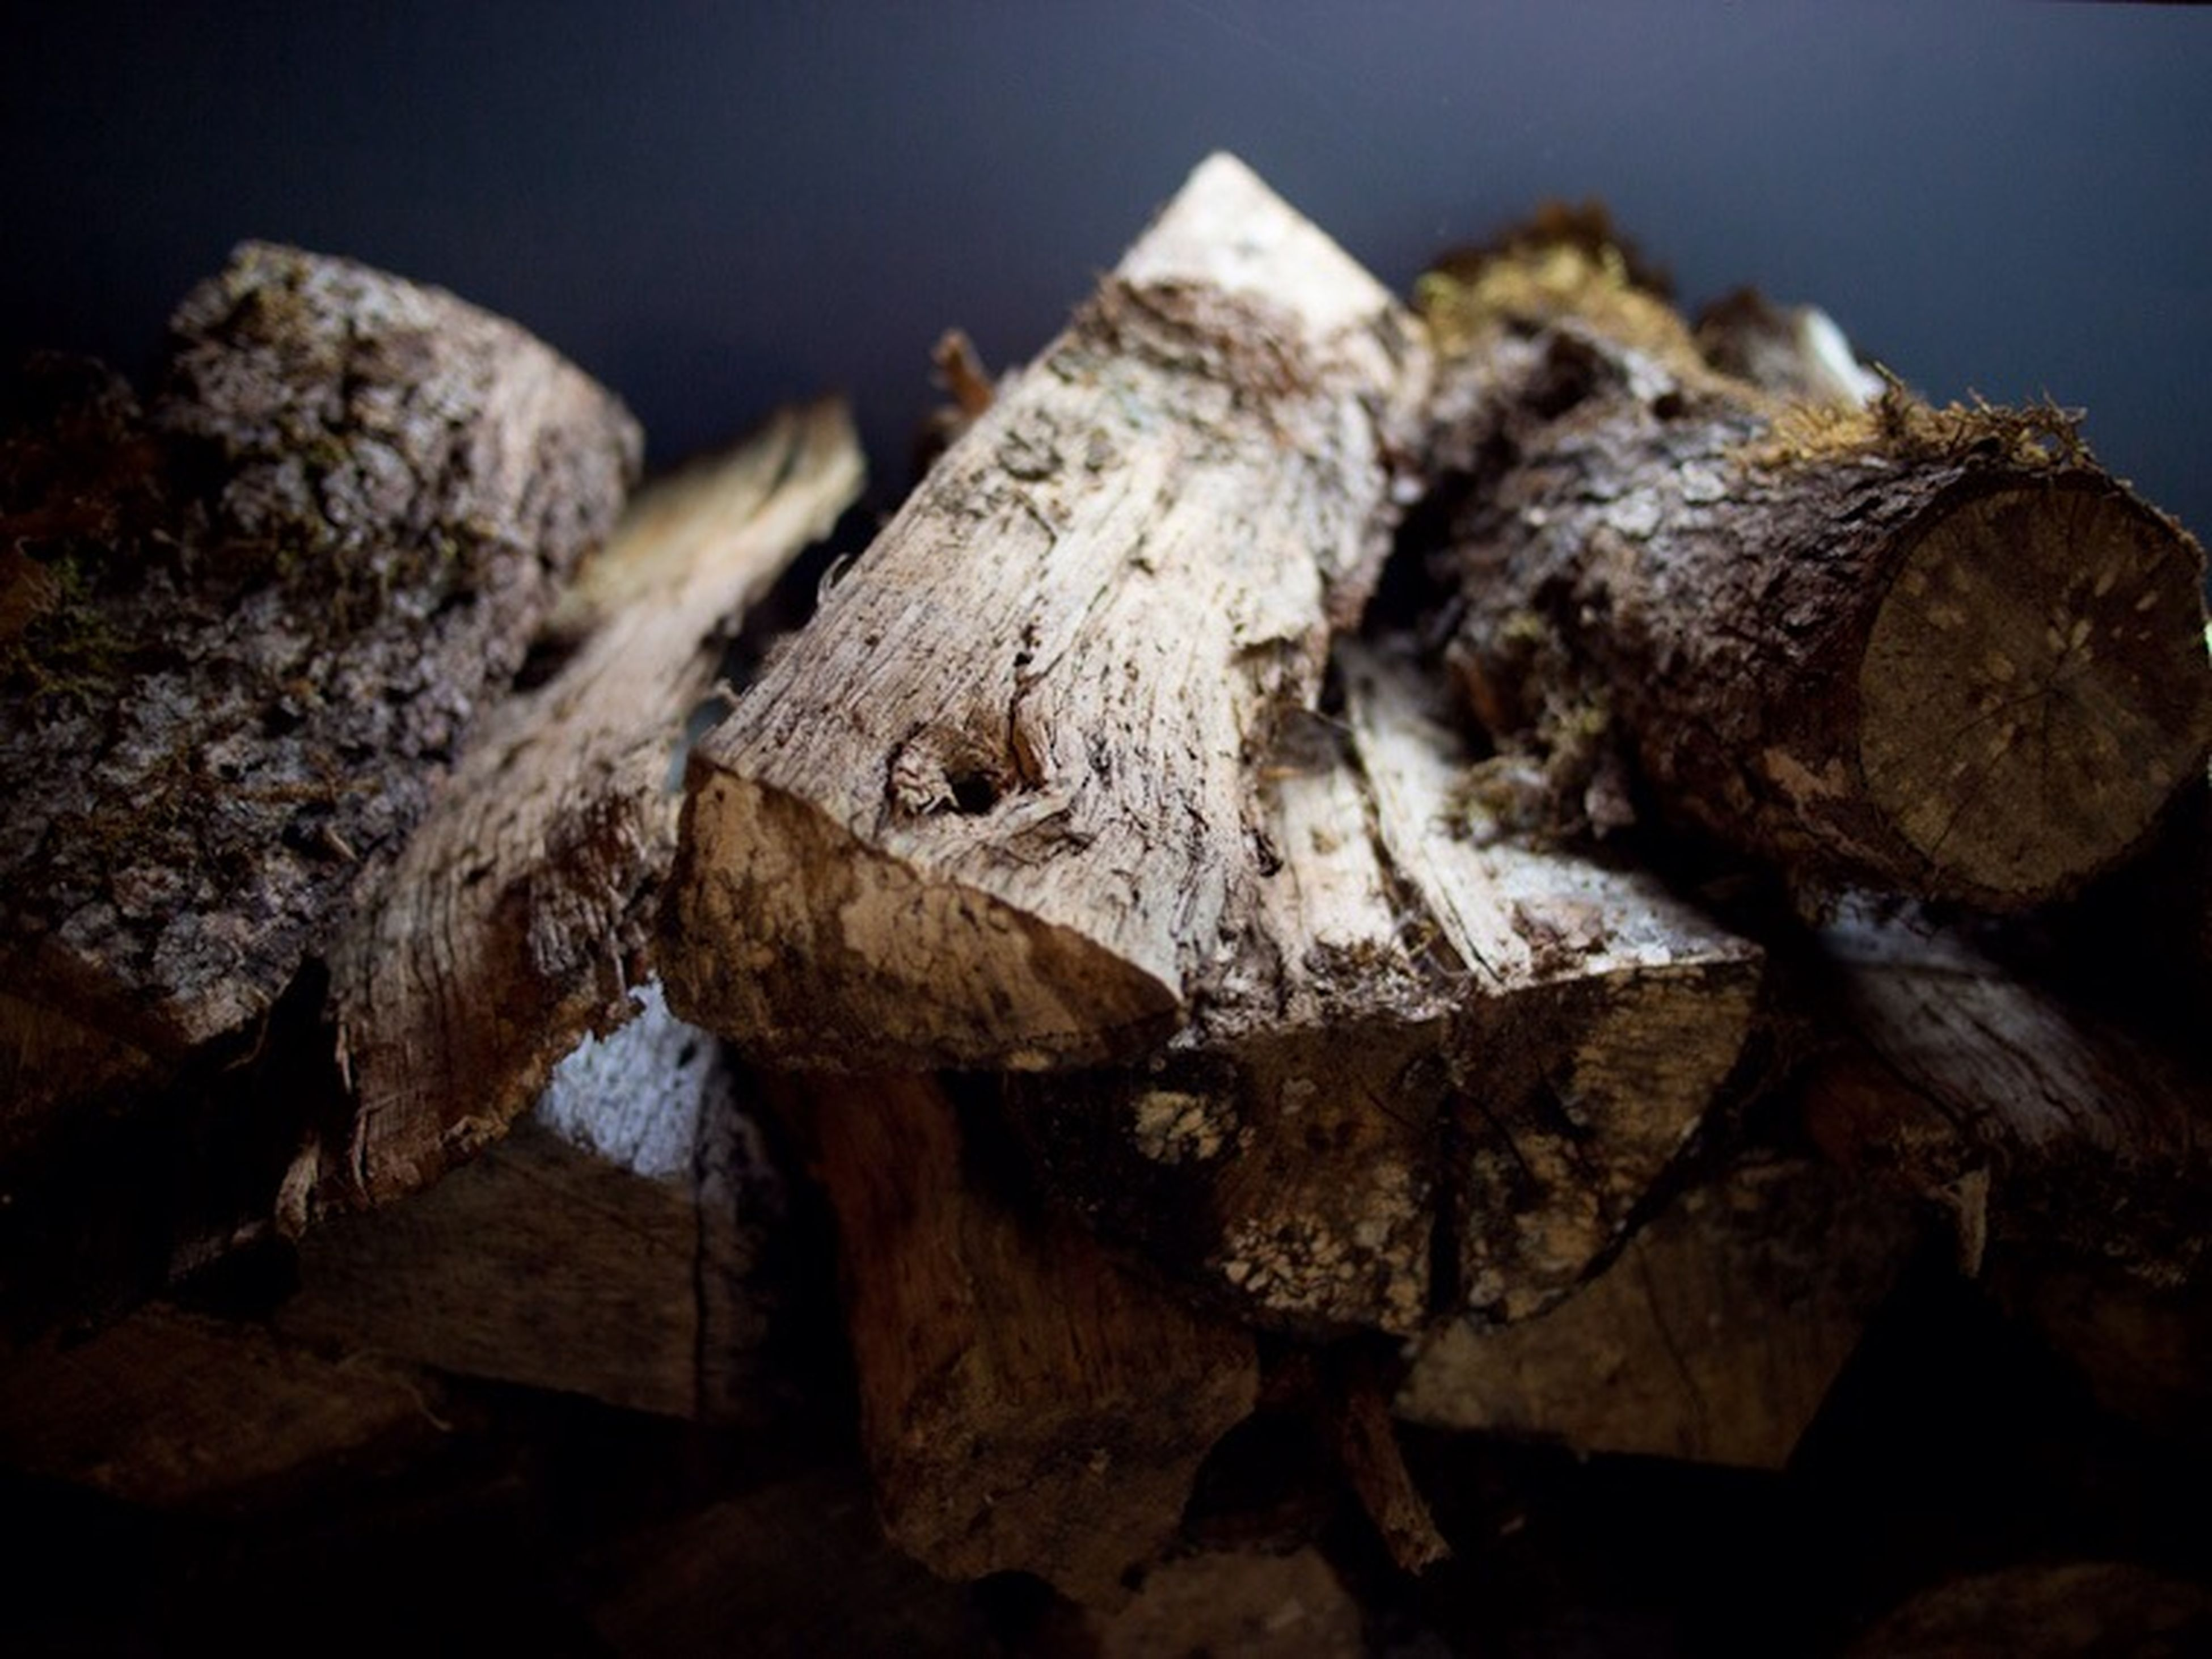 close-up, log, firewood, wood - material, textured, stack, rock - object, selective focus, no people, rough, nature, wood, deforestation, outdoors, damaged, focus on foreground, lumber industry, day, brown